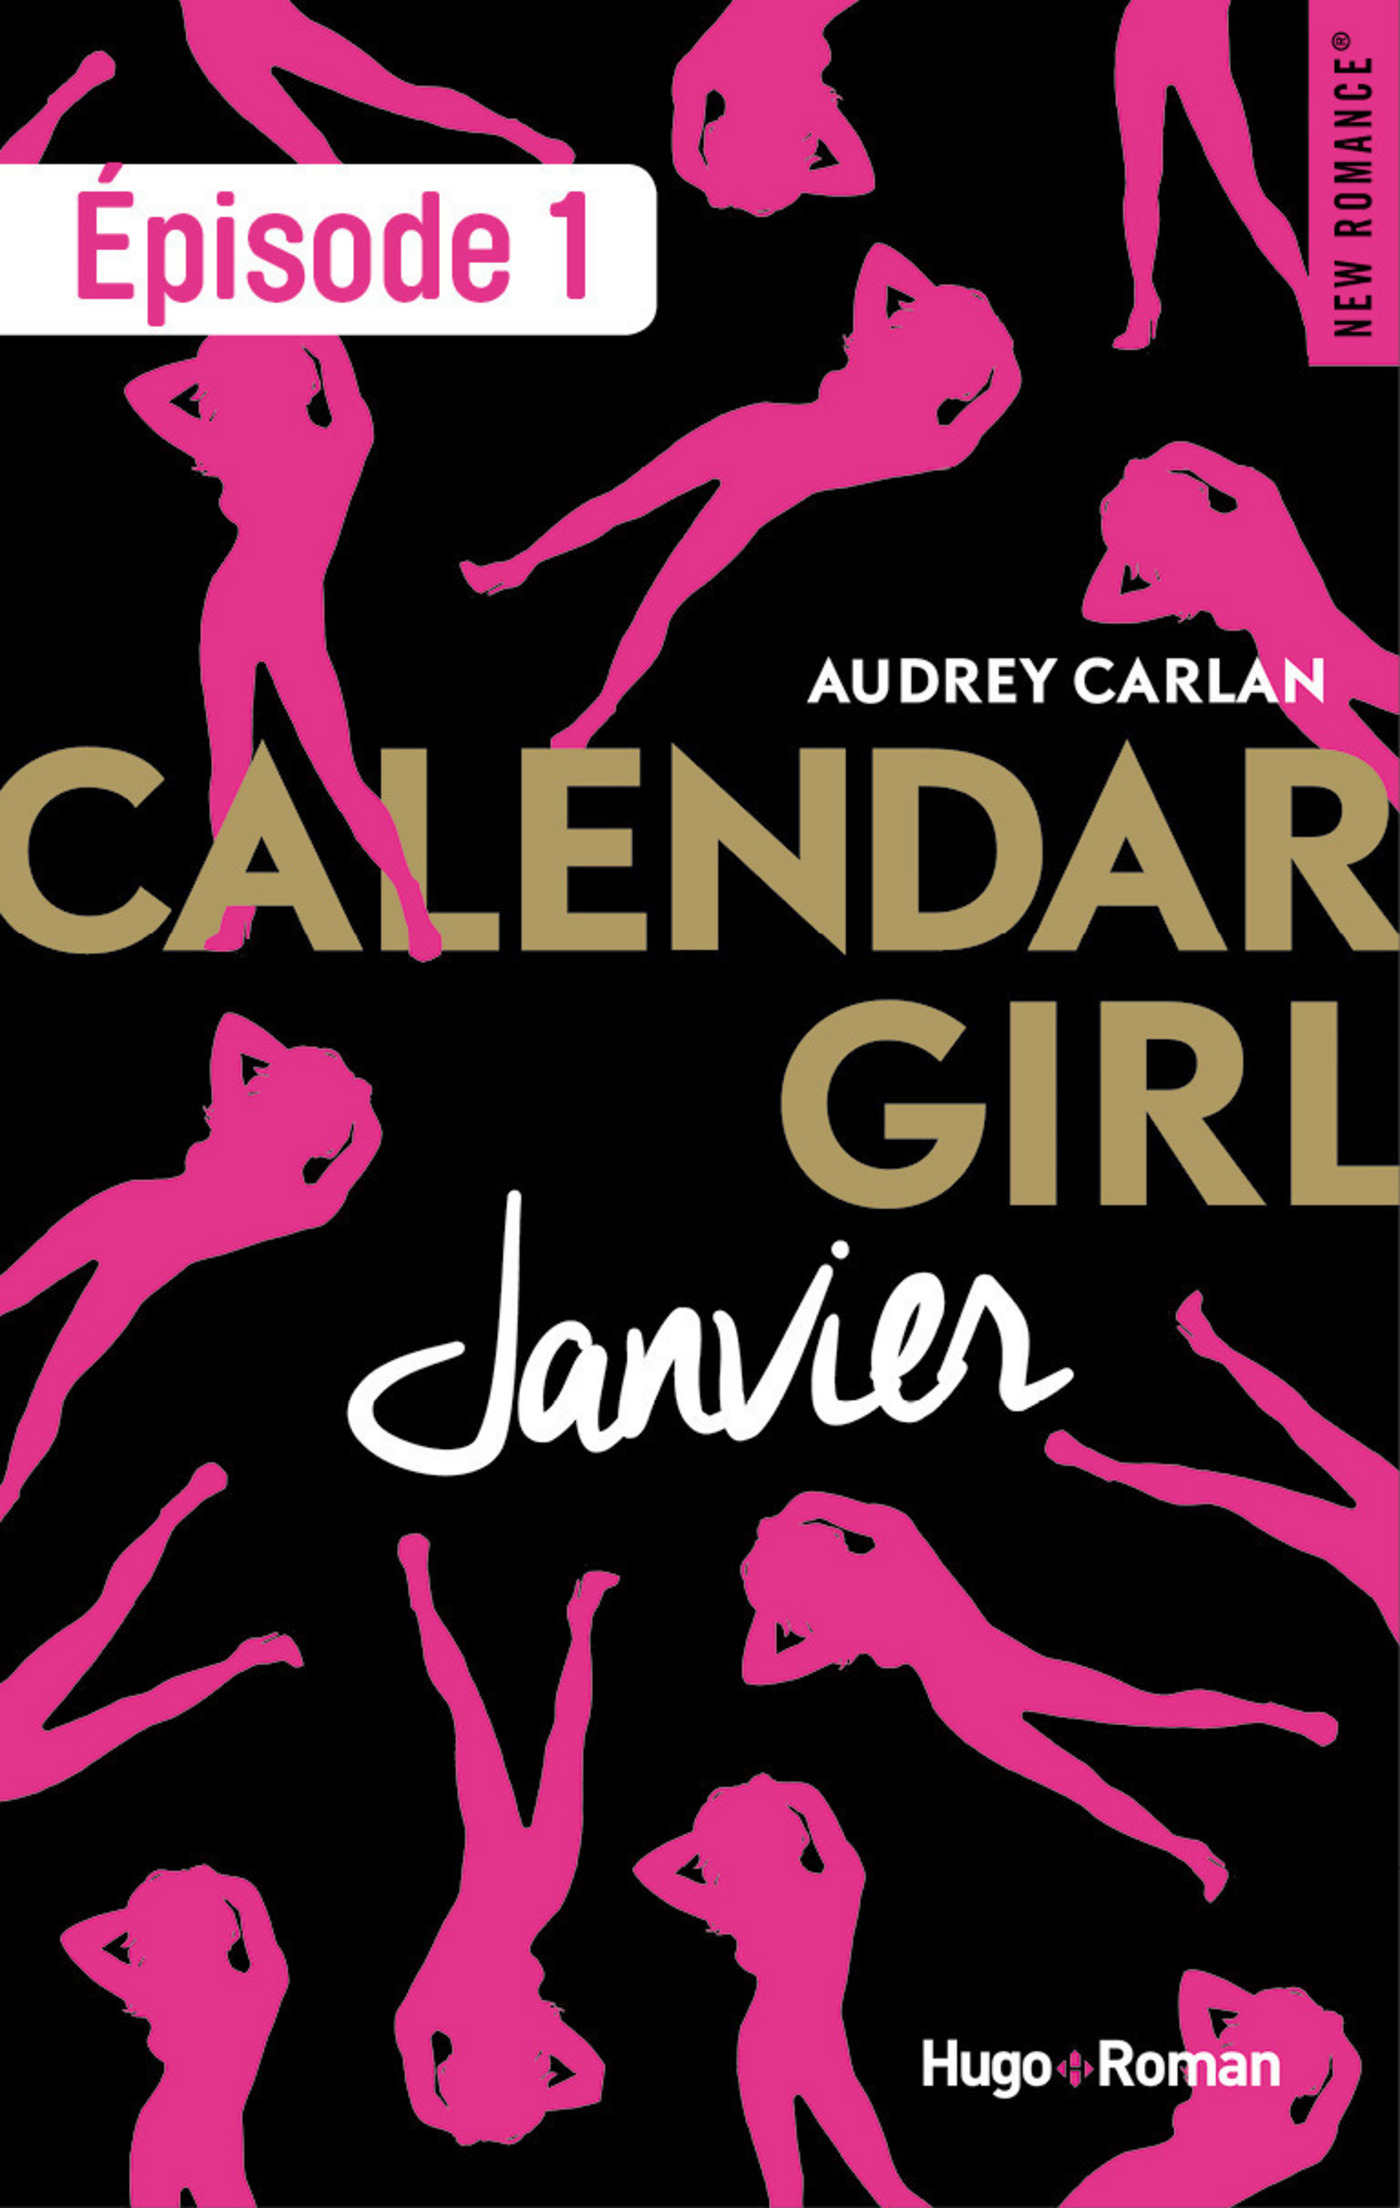 Calendar Girl - Janvier Episode 1